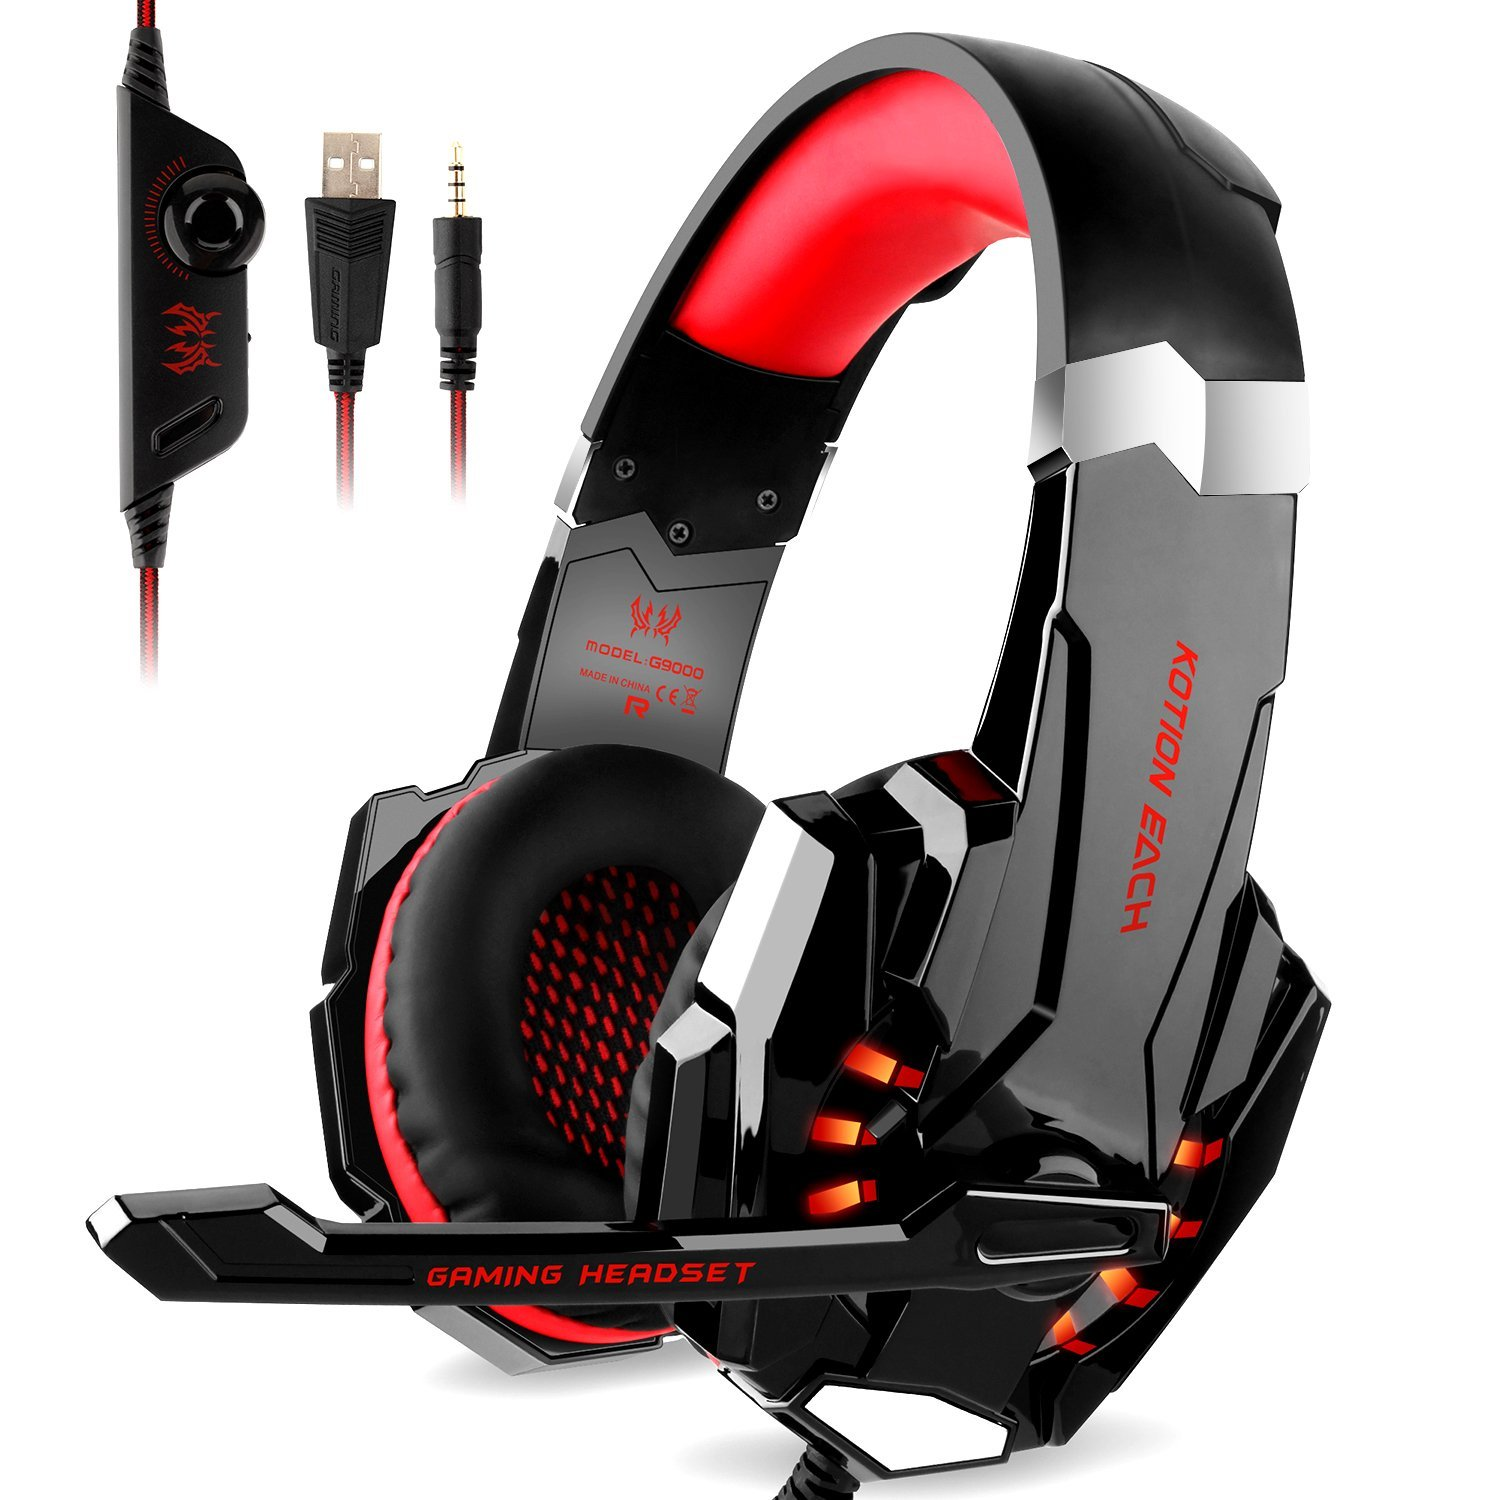 Stereo Gaming Headset For Xbox one Controller PS4 Headset Gaming Headphone With Microphone For Nintendo Switch Game Laptop Mac huhd 7 1 surround sound stereo headset 2 4ghz optical wireless gaming headset headphone for ps4 3 xbox 360 one pc tv earphones